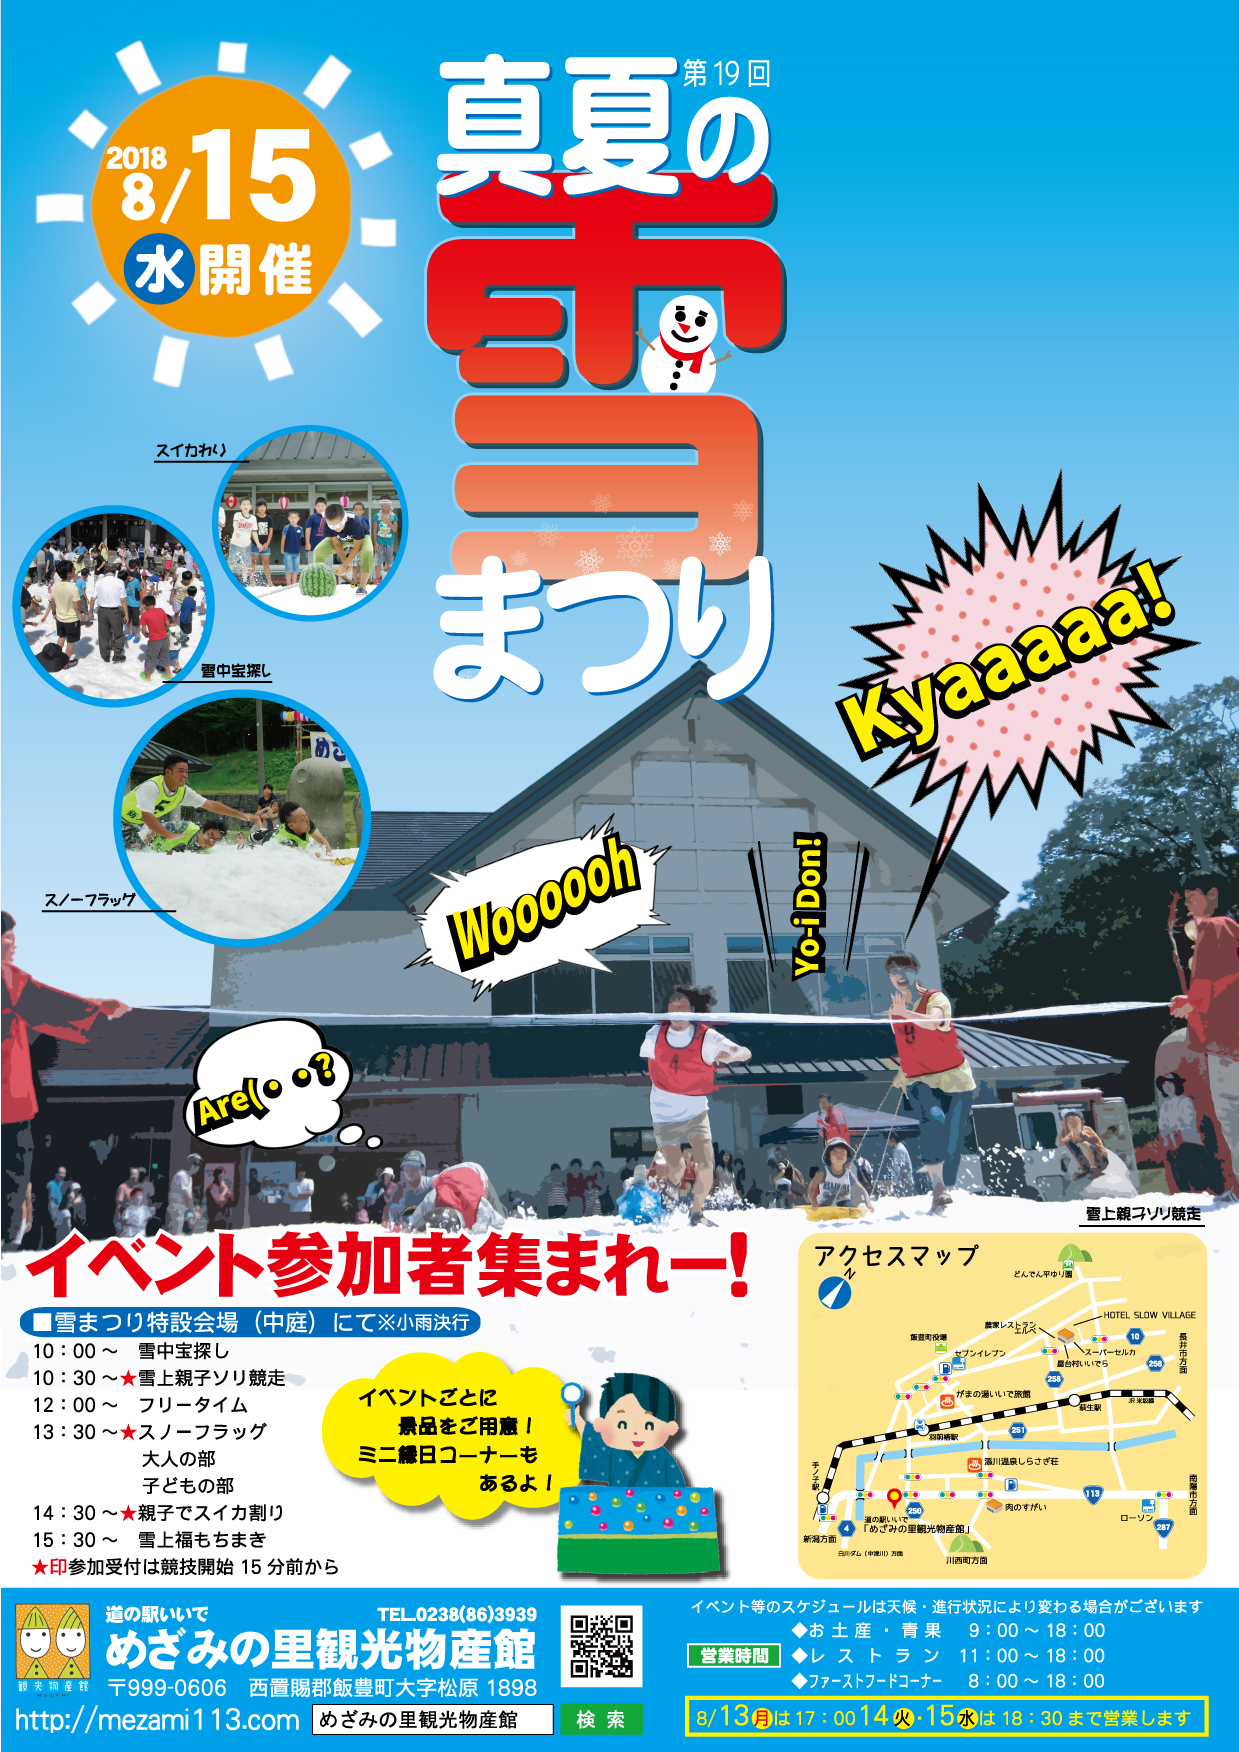 Mezami Festival is held in the summer for 2018: Image